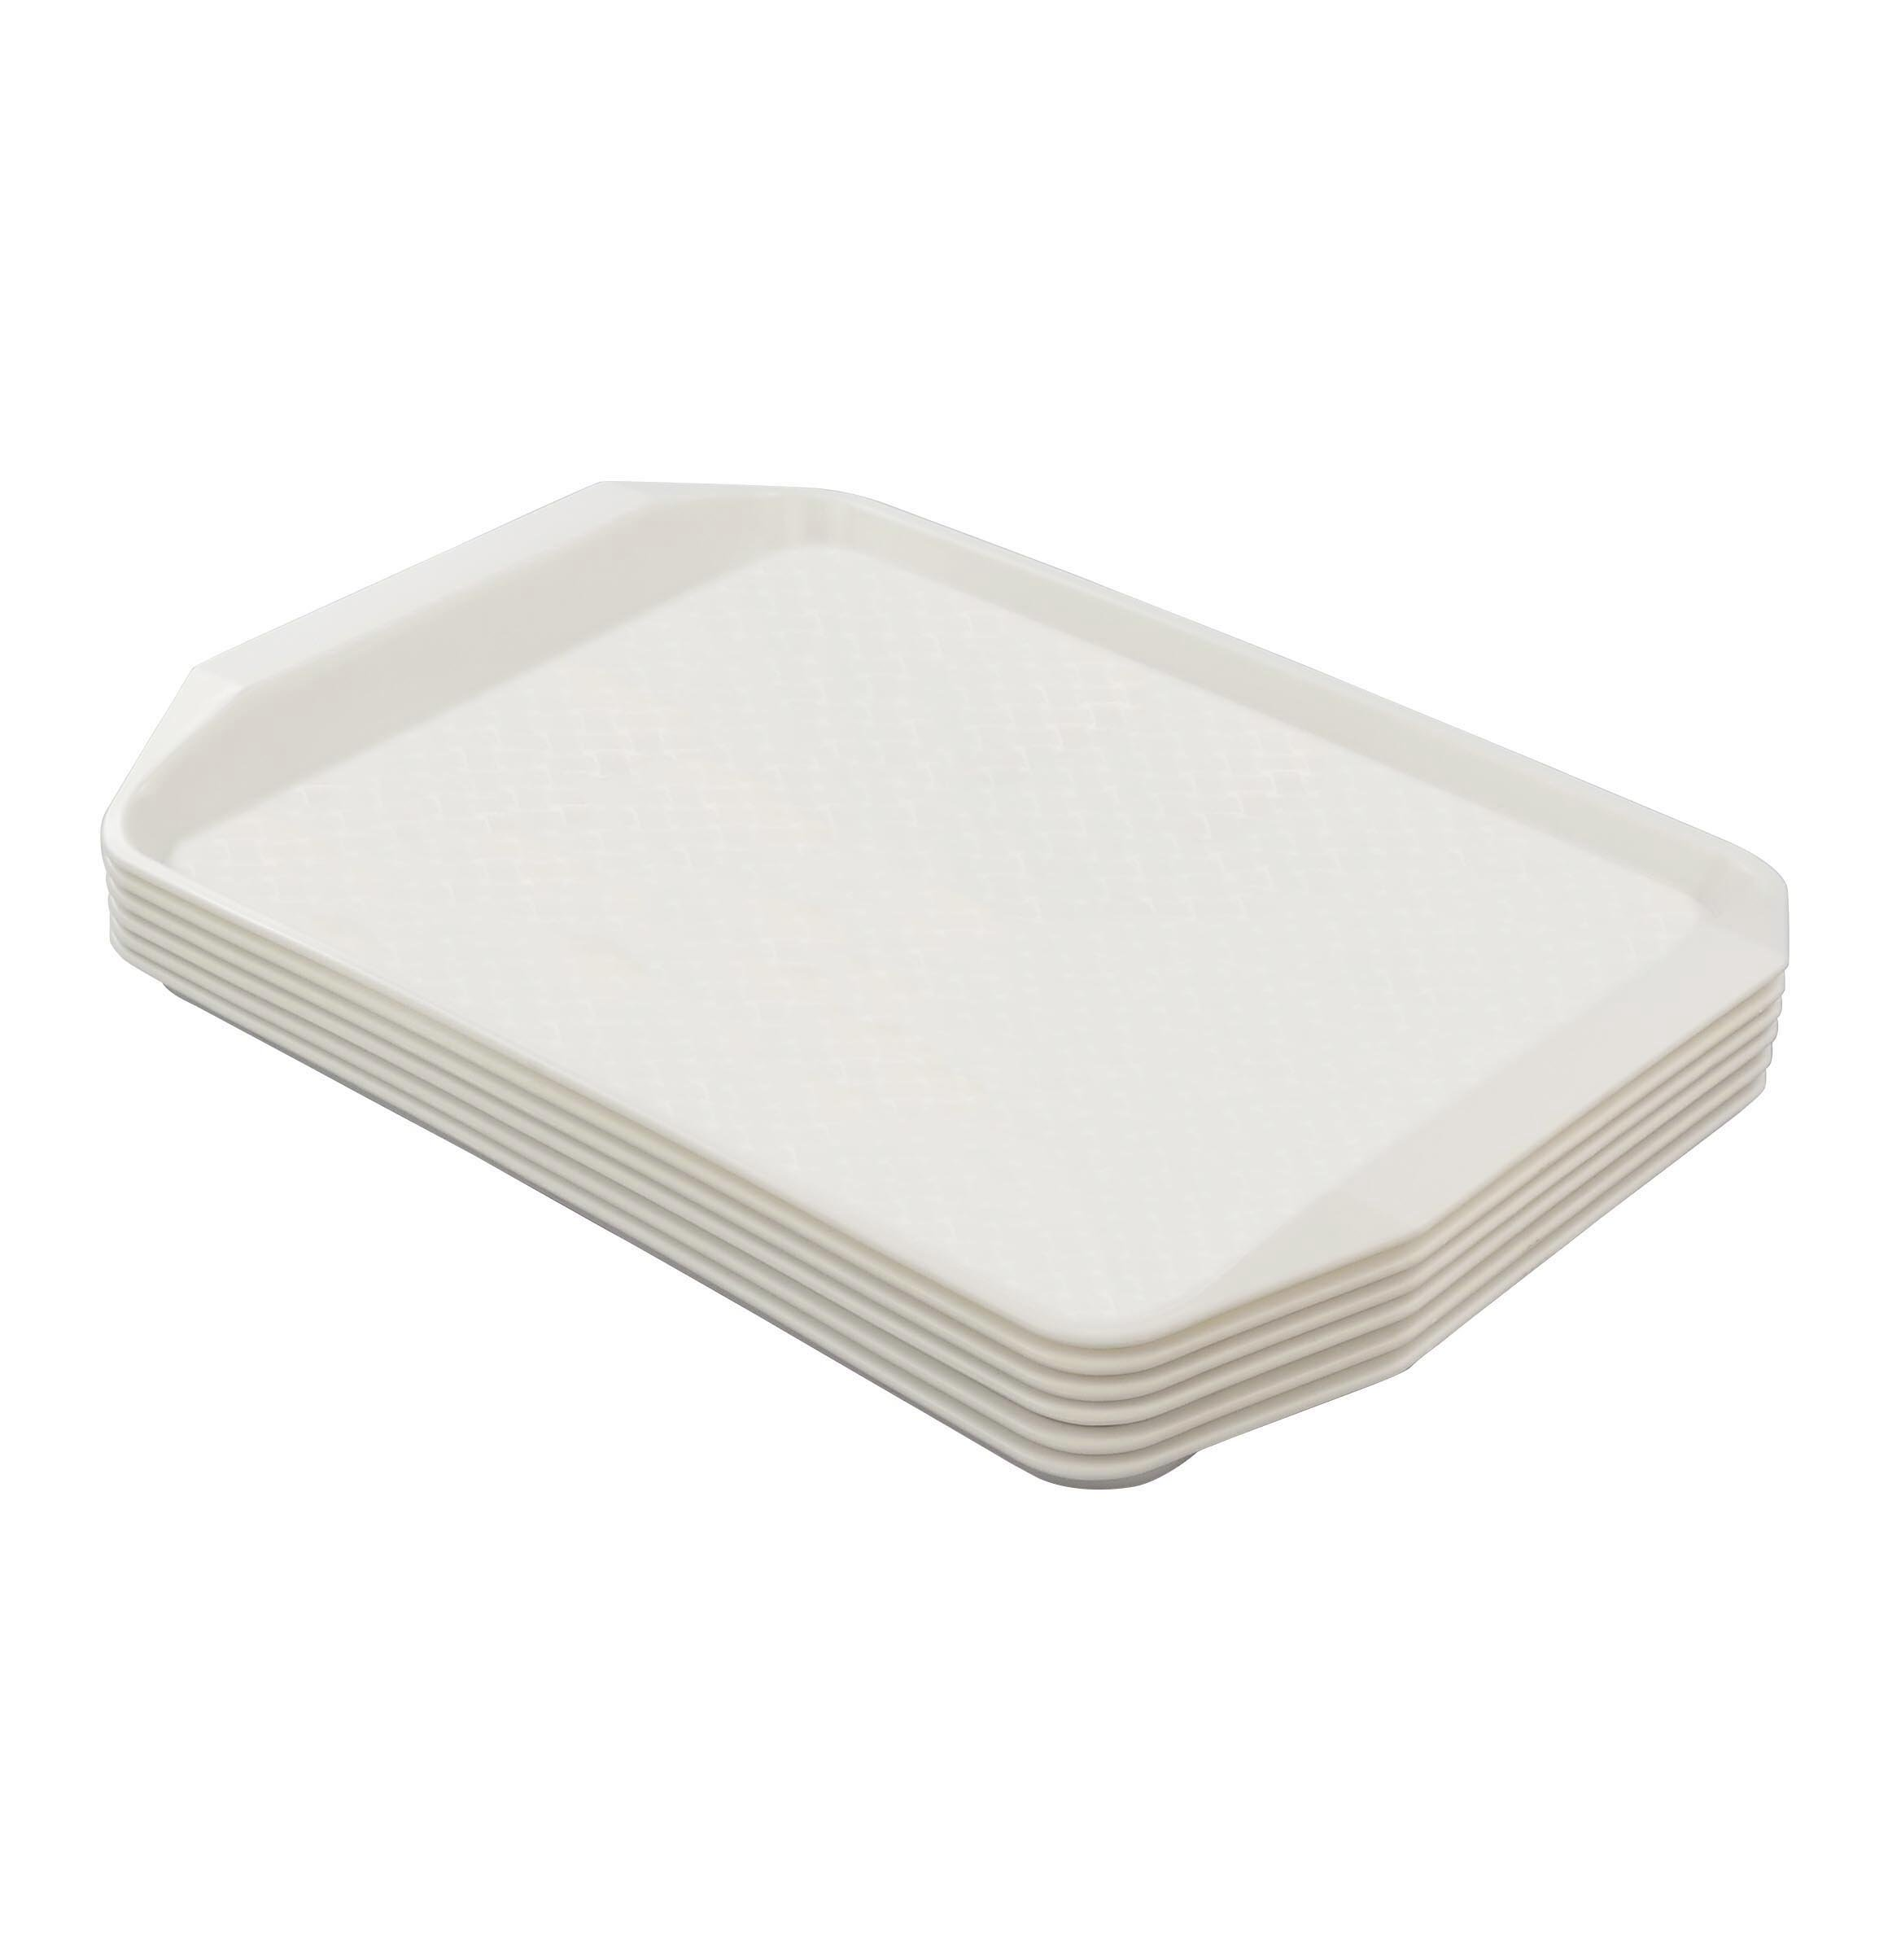 Eagrye Fast Food Serving Trays, Rectangle 16.9'' x 12'', Set of 6 (White)